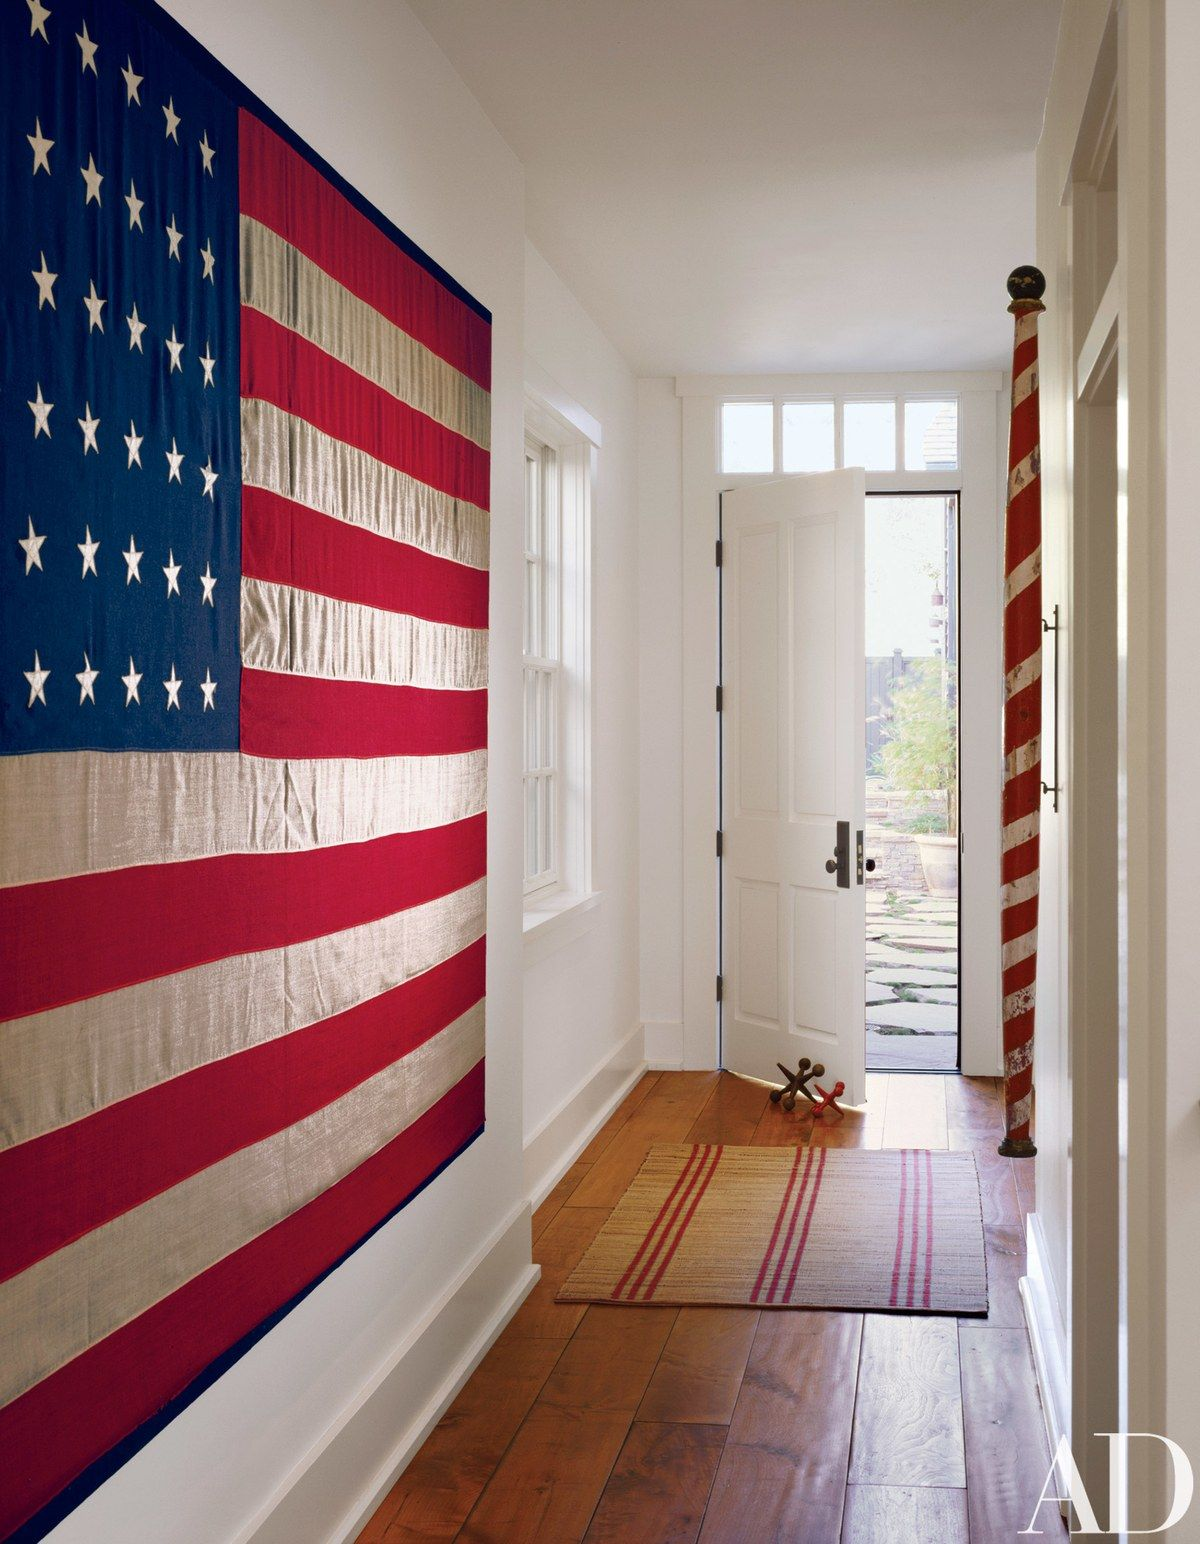 A vintage flag with 48 stars hangs on a wall in the entrance hall ...